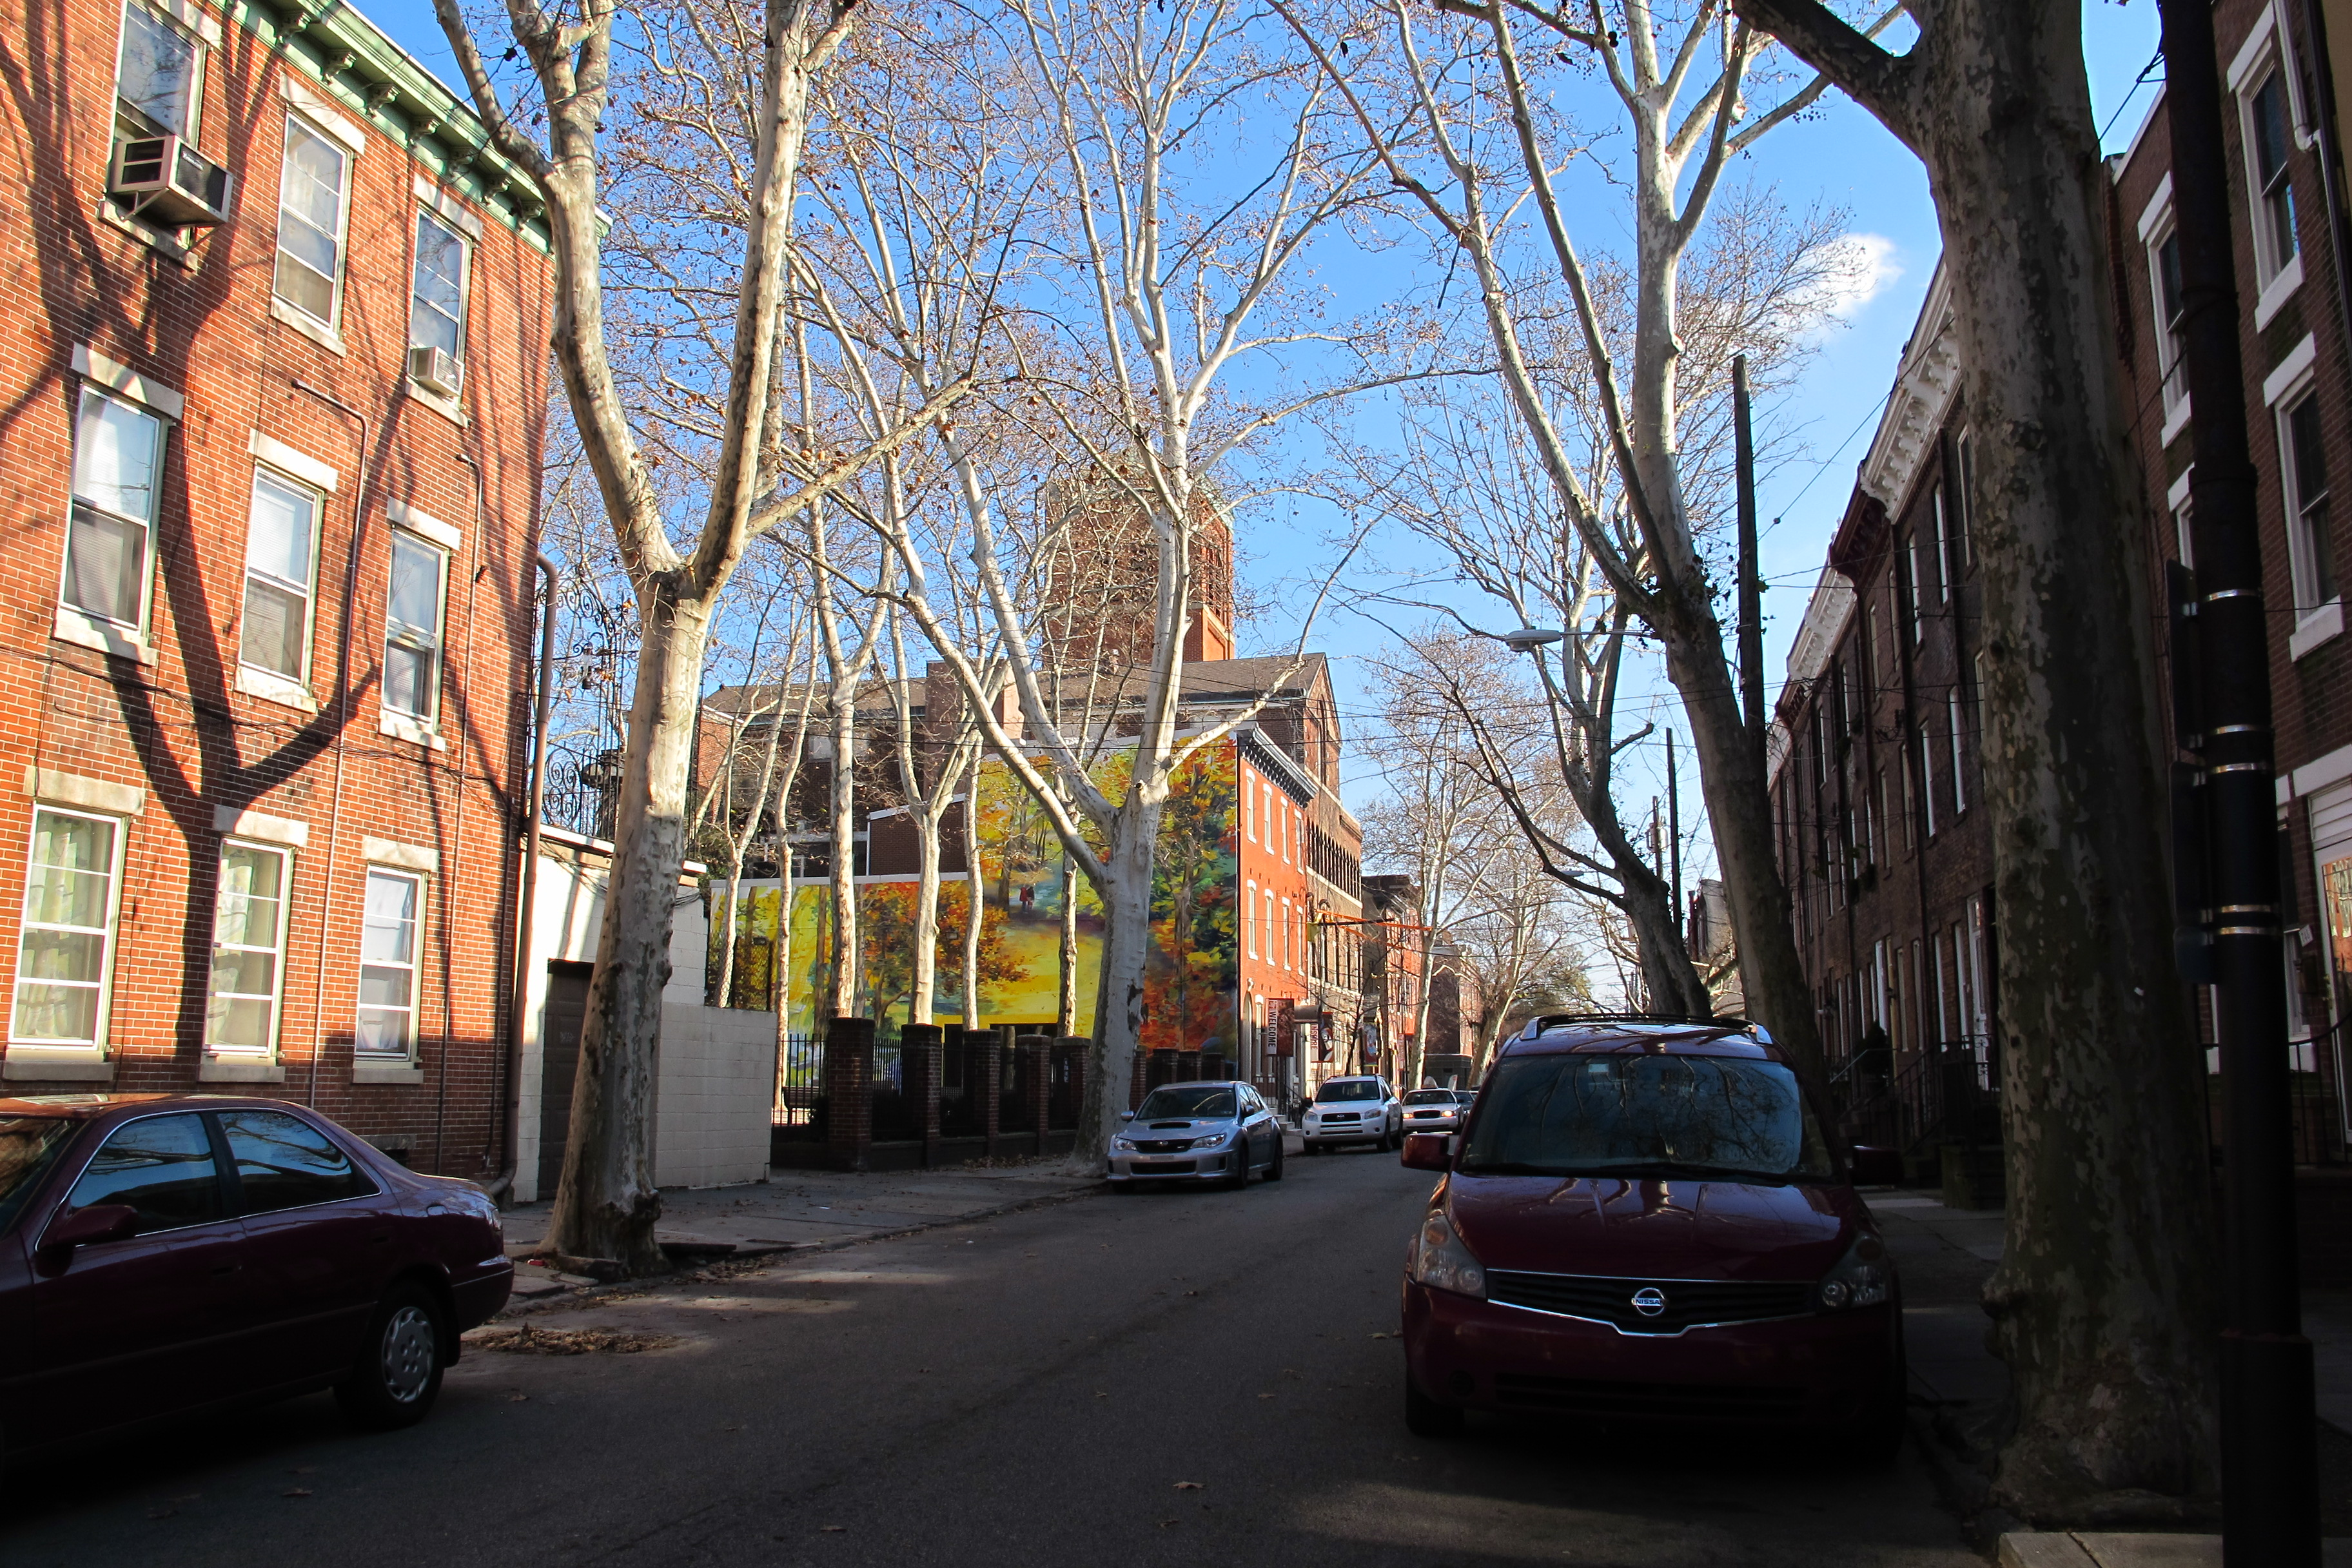 700 block of Catharine Street, Palumbo Park midblock